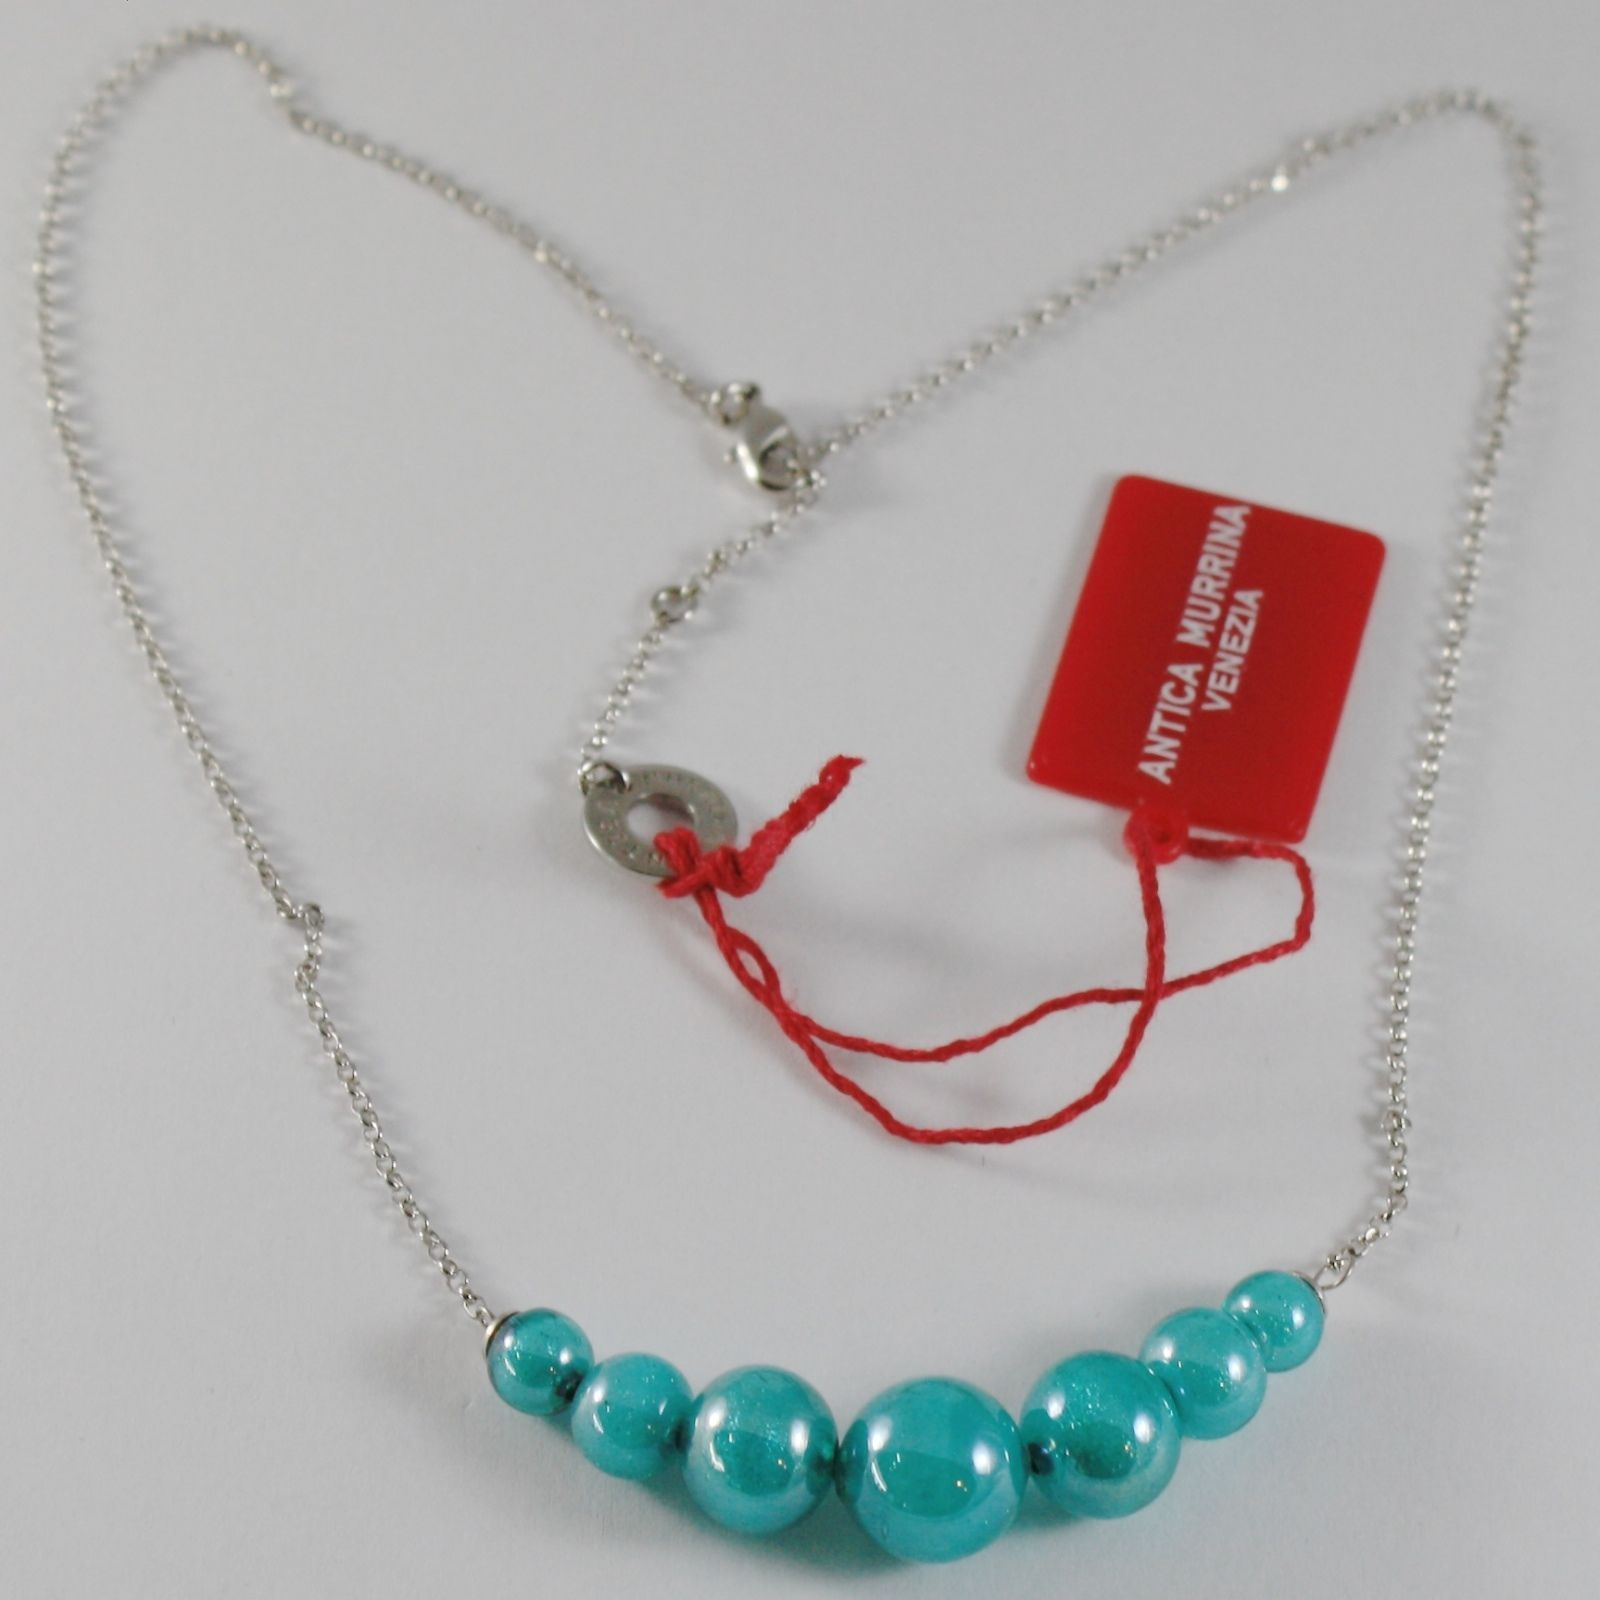 ANTICA MURRINA VENEZIA CENTRAL TURQUOISE BALLS NECKLACE 50 CM 20 INCHES